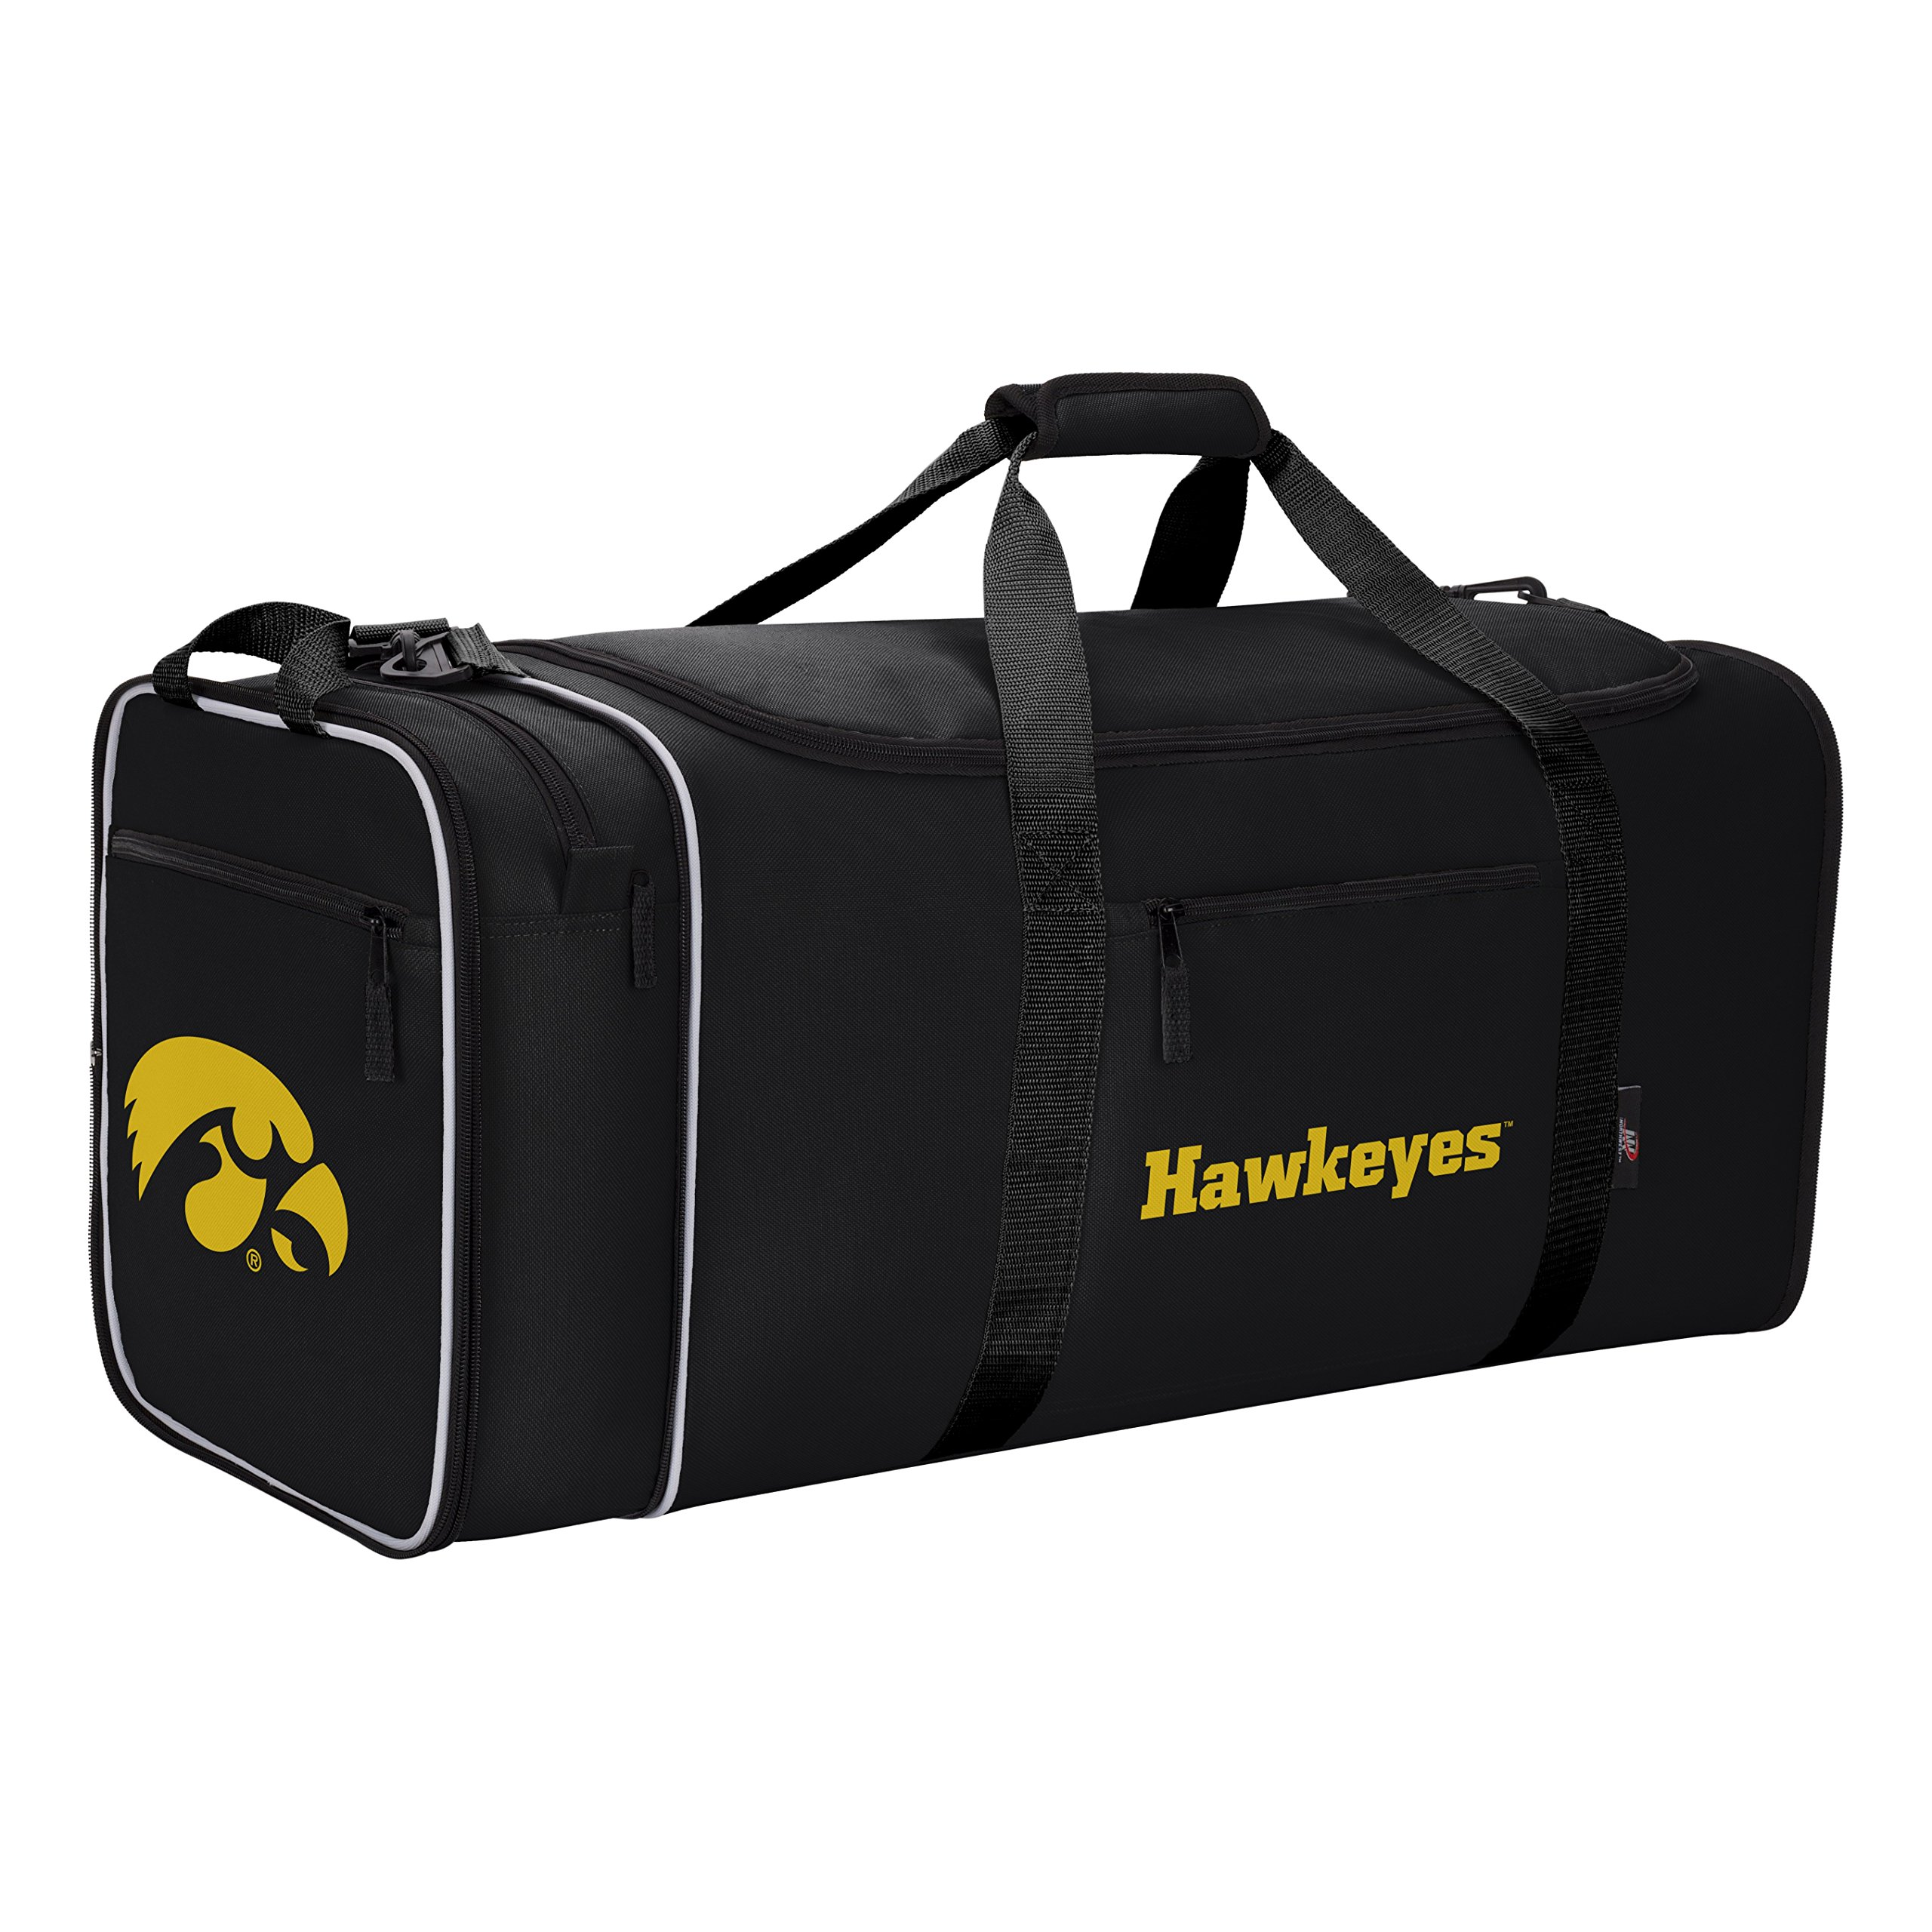 Officially Licensed NCAA Iowa Hawkeyes Steal Duffel Bag by The Northwest Company (Image #3)